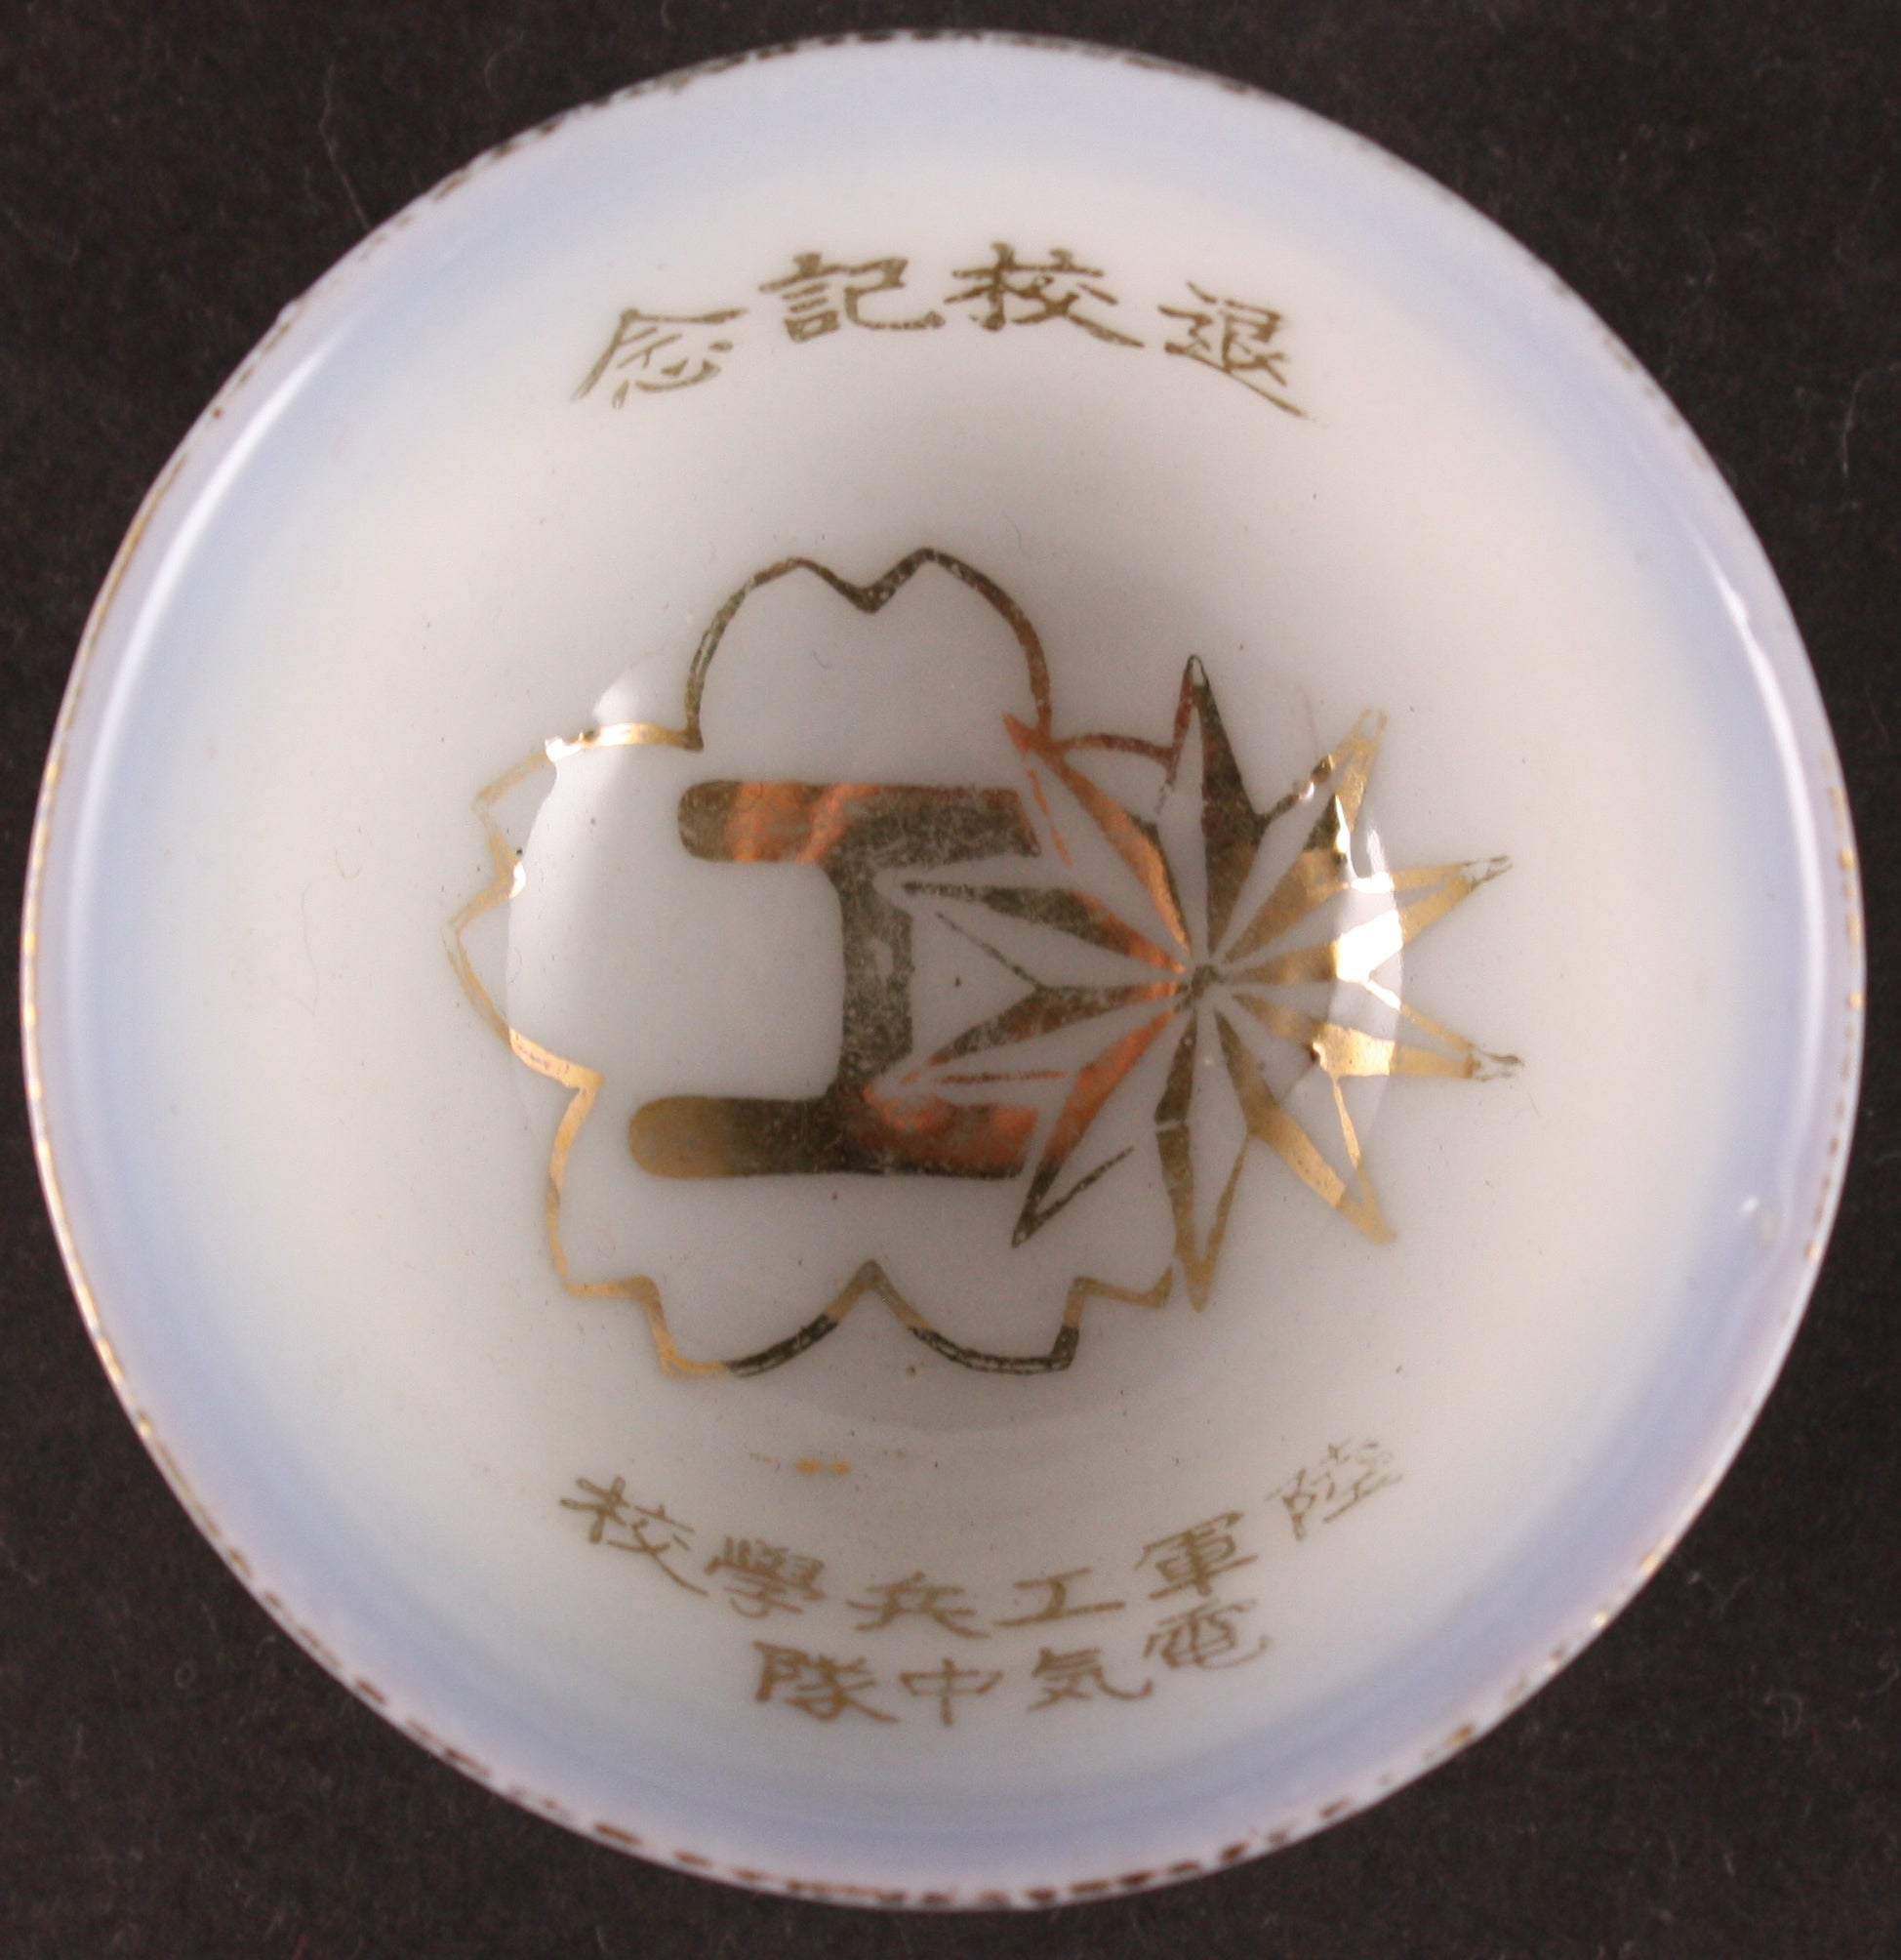 Rare Antique Japanese Military Electrician Engineer Academy Army Sake Cup